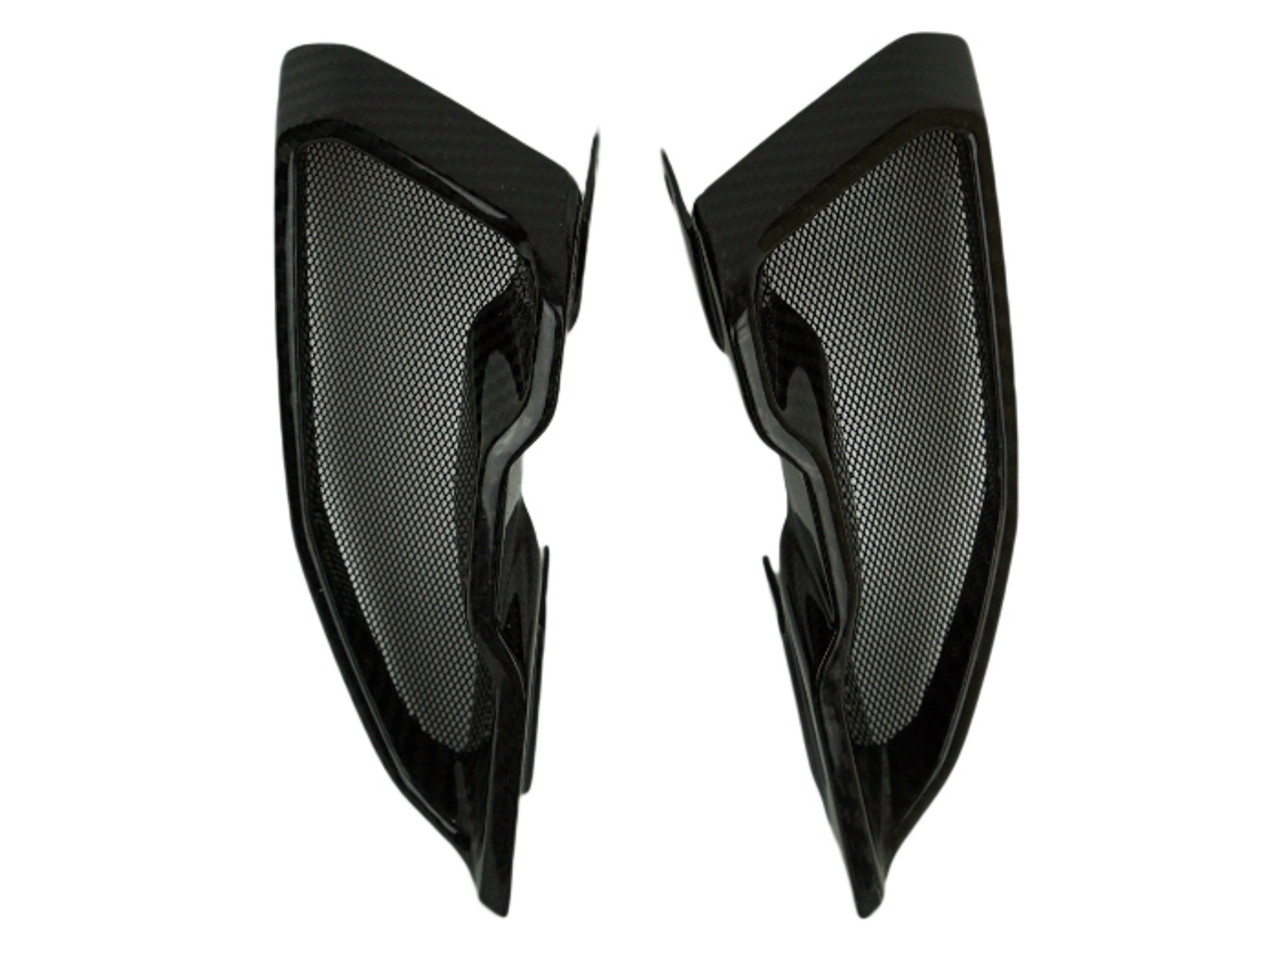 Air Intakes in Glossy Twill Weave Carbon Fiber for Yamaha FZ-10-MT-10